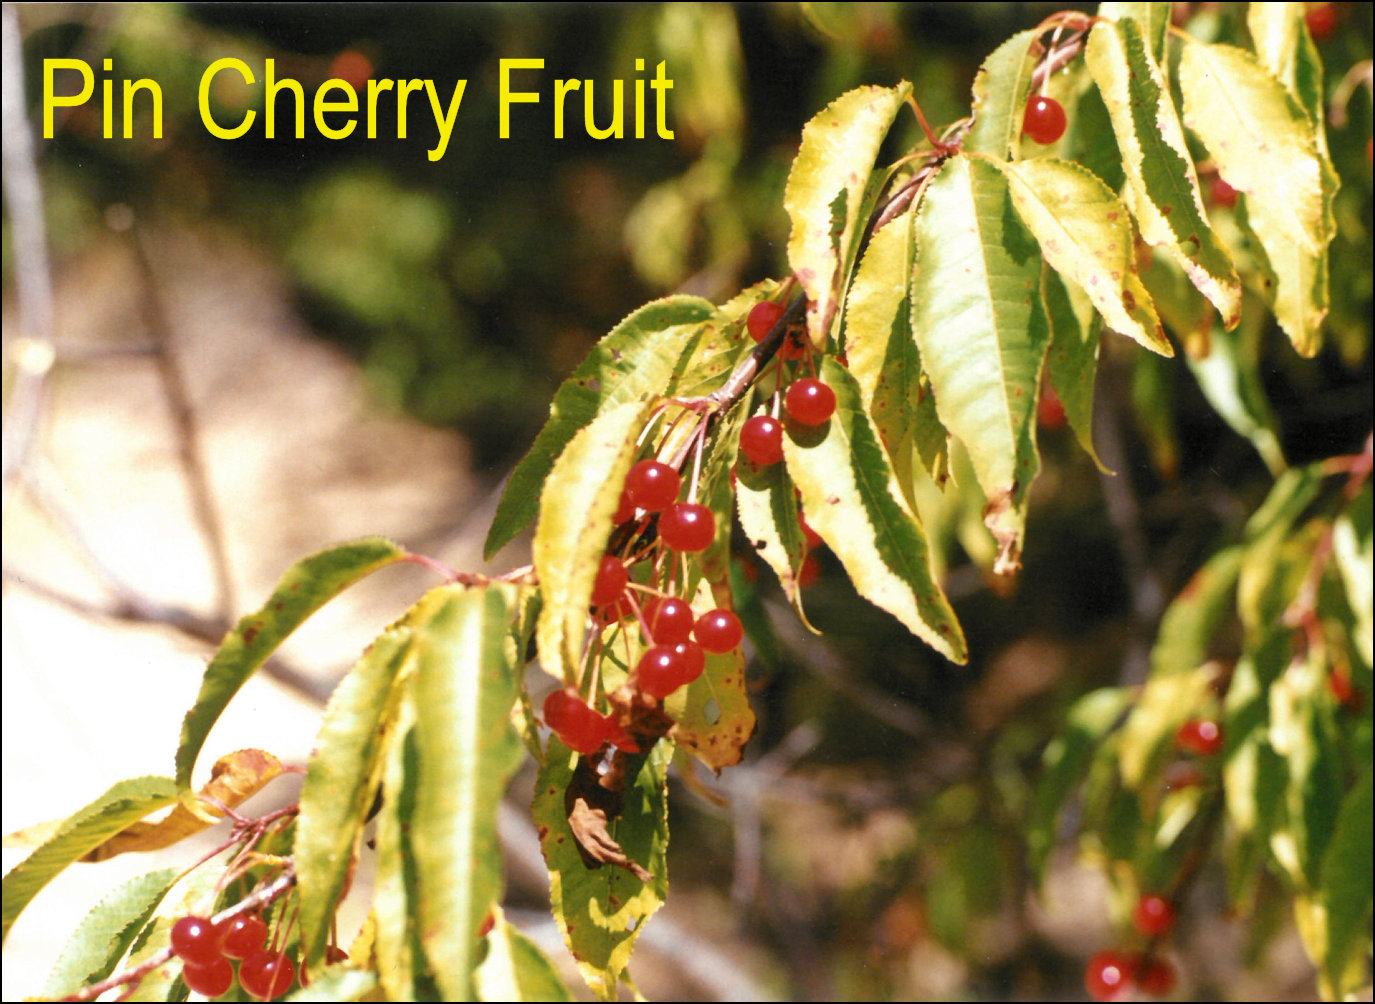 True cherries x leaves are similar to black cherry but usually a bit more elongated and without the rusty fuzz the teeth along the leaf margin are somewhat incurved publicscrutiny Gallery